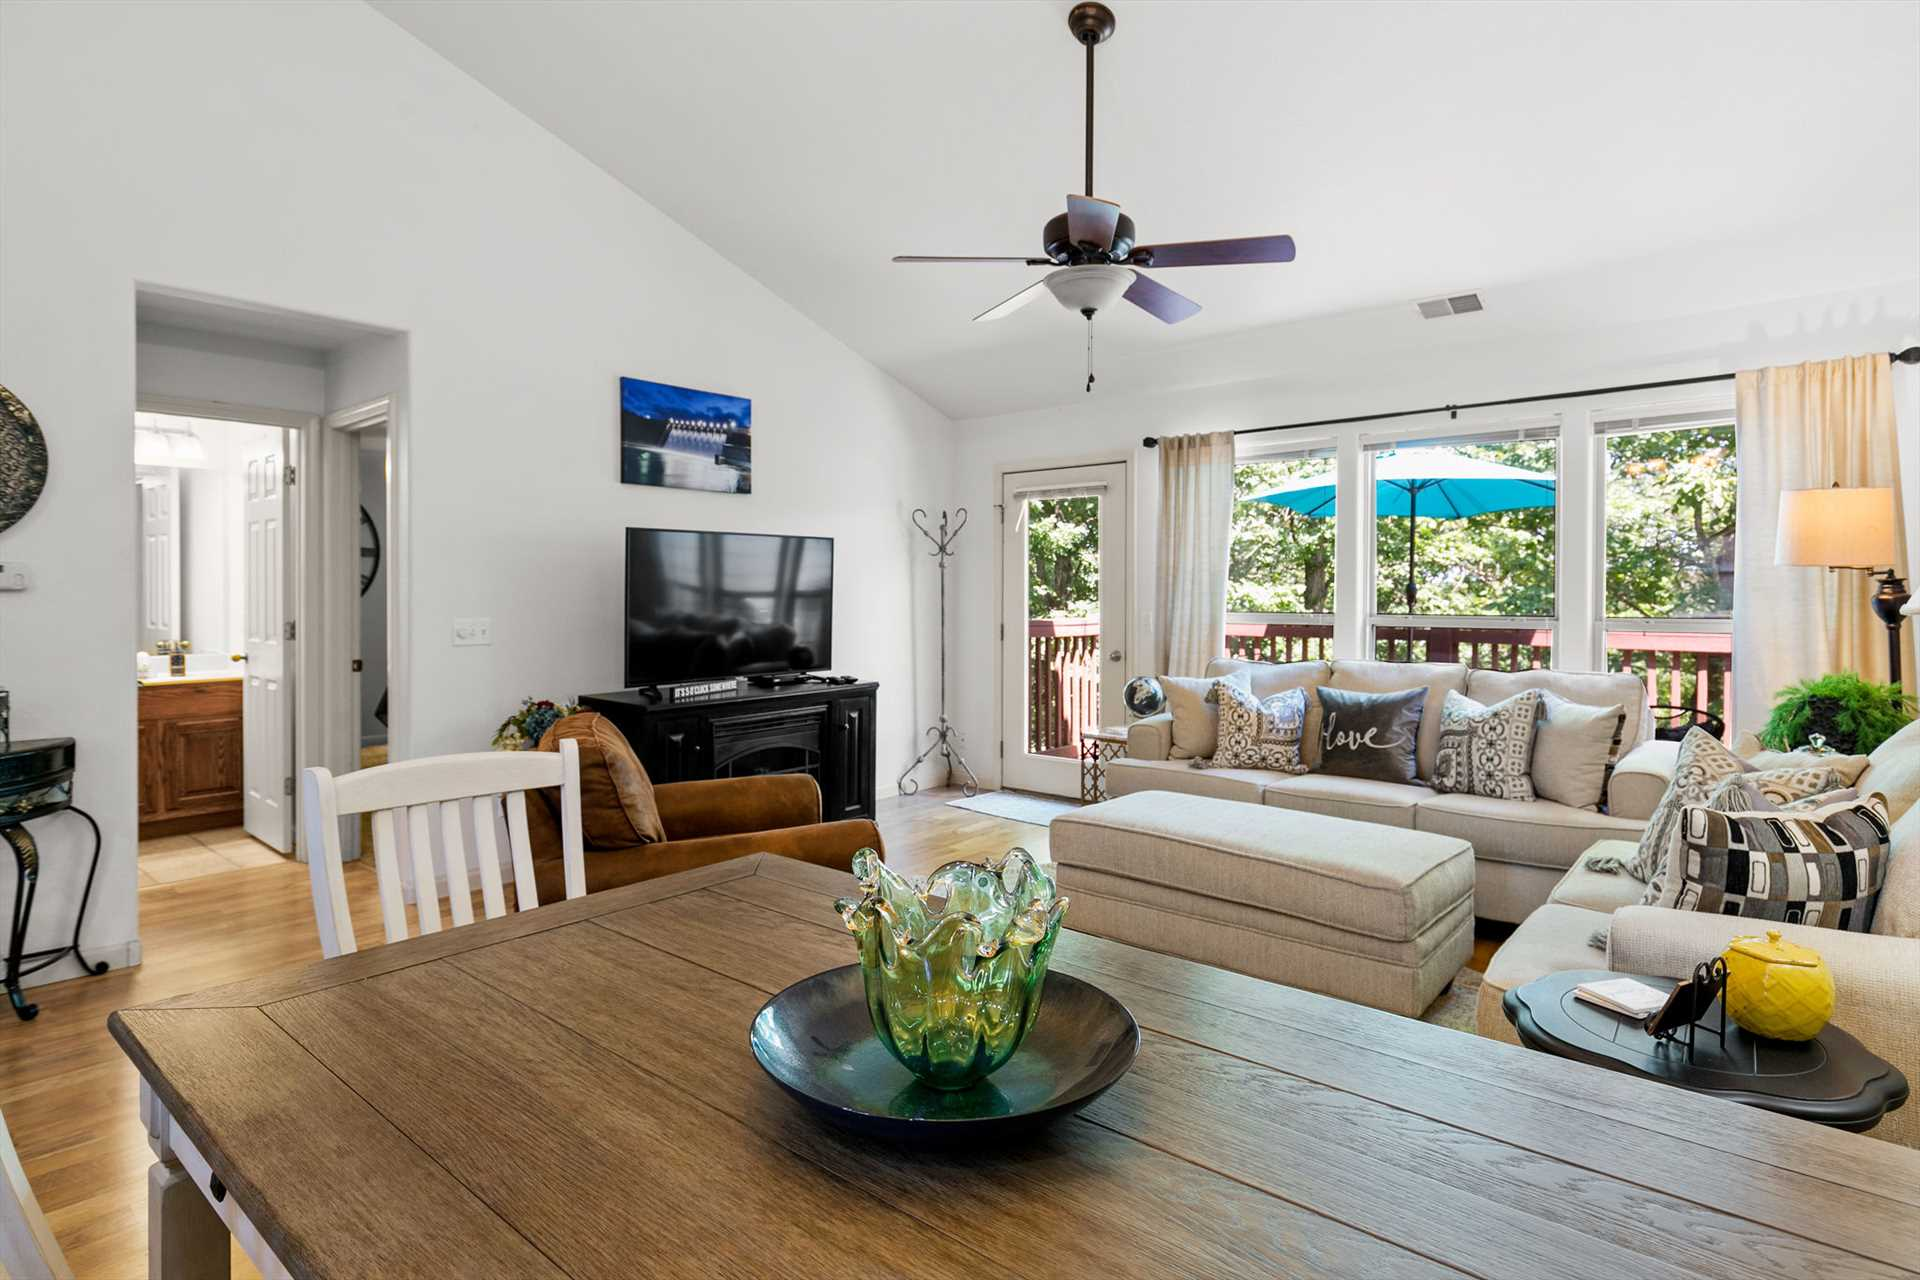 You will love the natural light from the large windows.